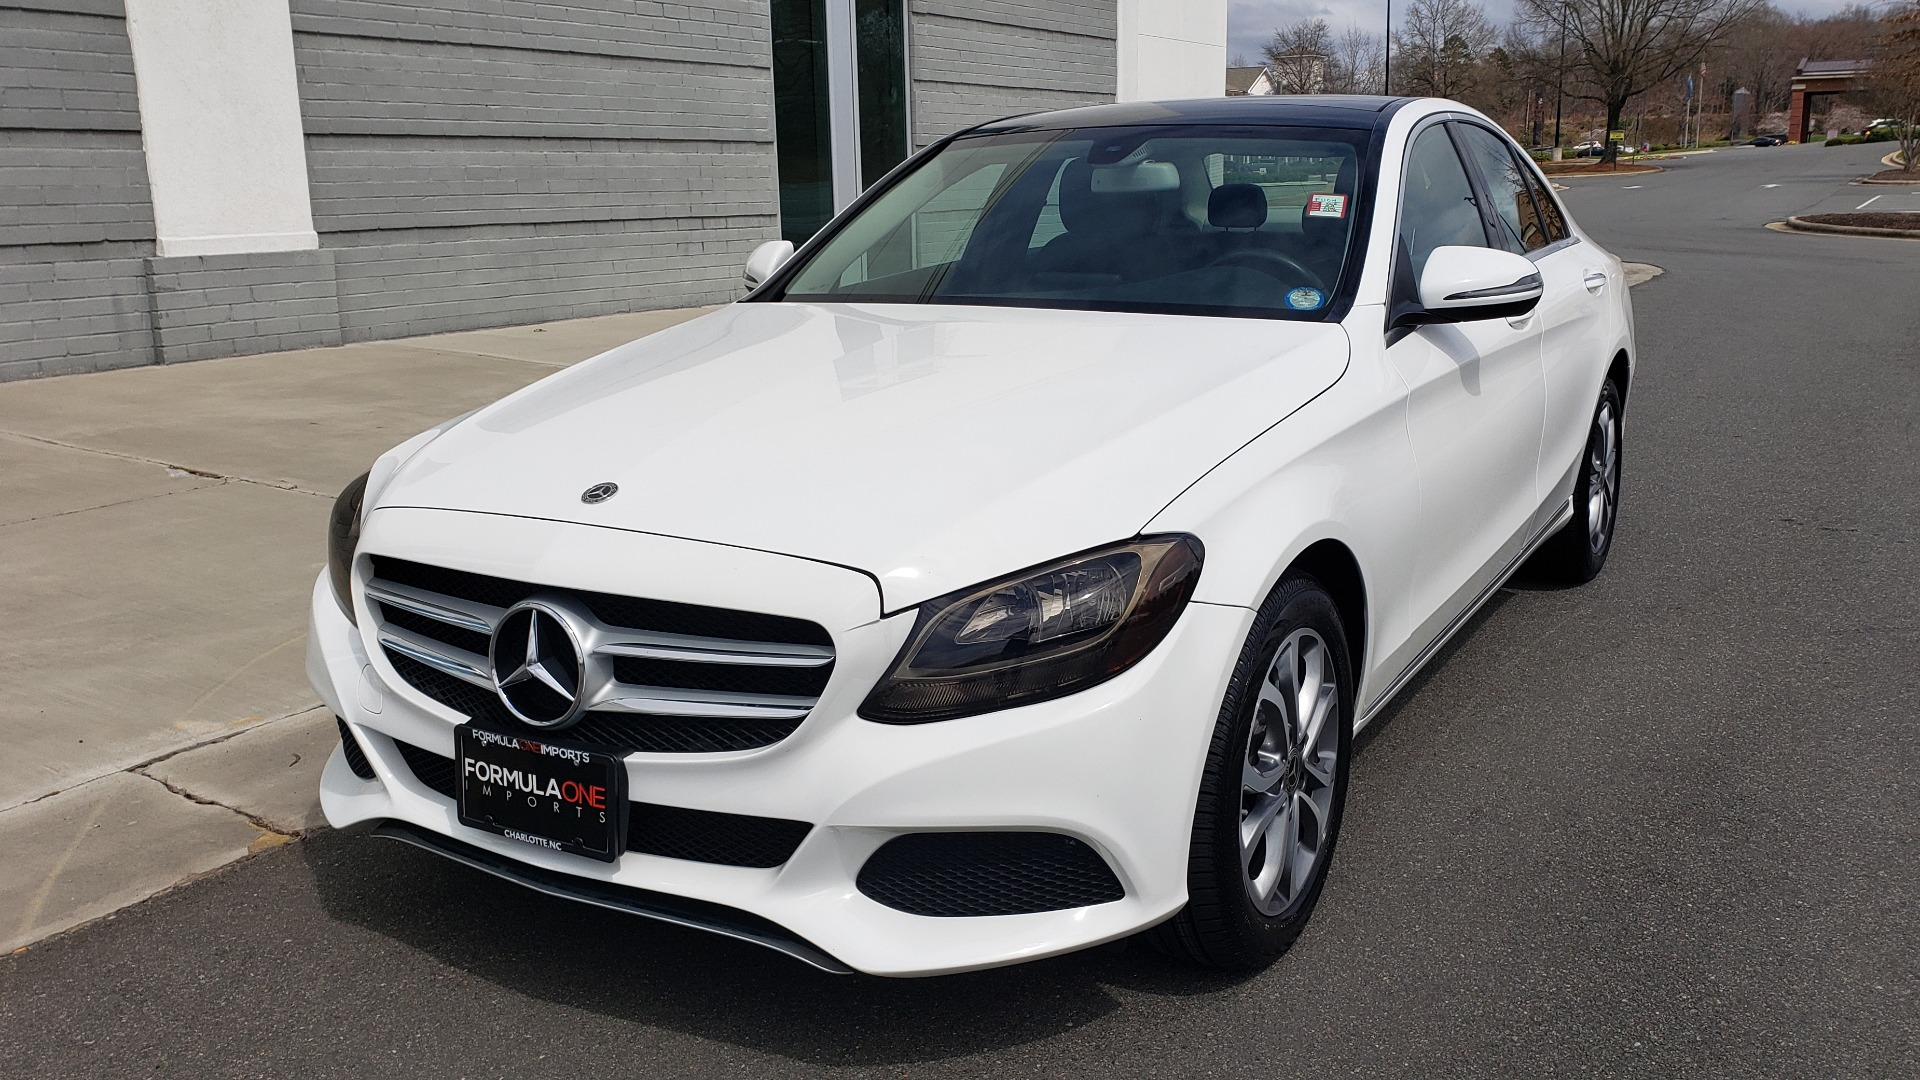 Used 2018 Mercedes-Benz C-CLASS C 300 4MATIC PREMIUM / HTD STS / PANO-ROOF / REARVIEW for sale Sold at Formula Imports in Charlotte NC 28227 2